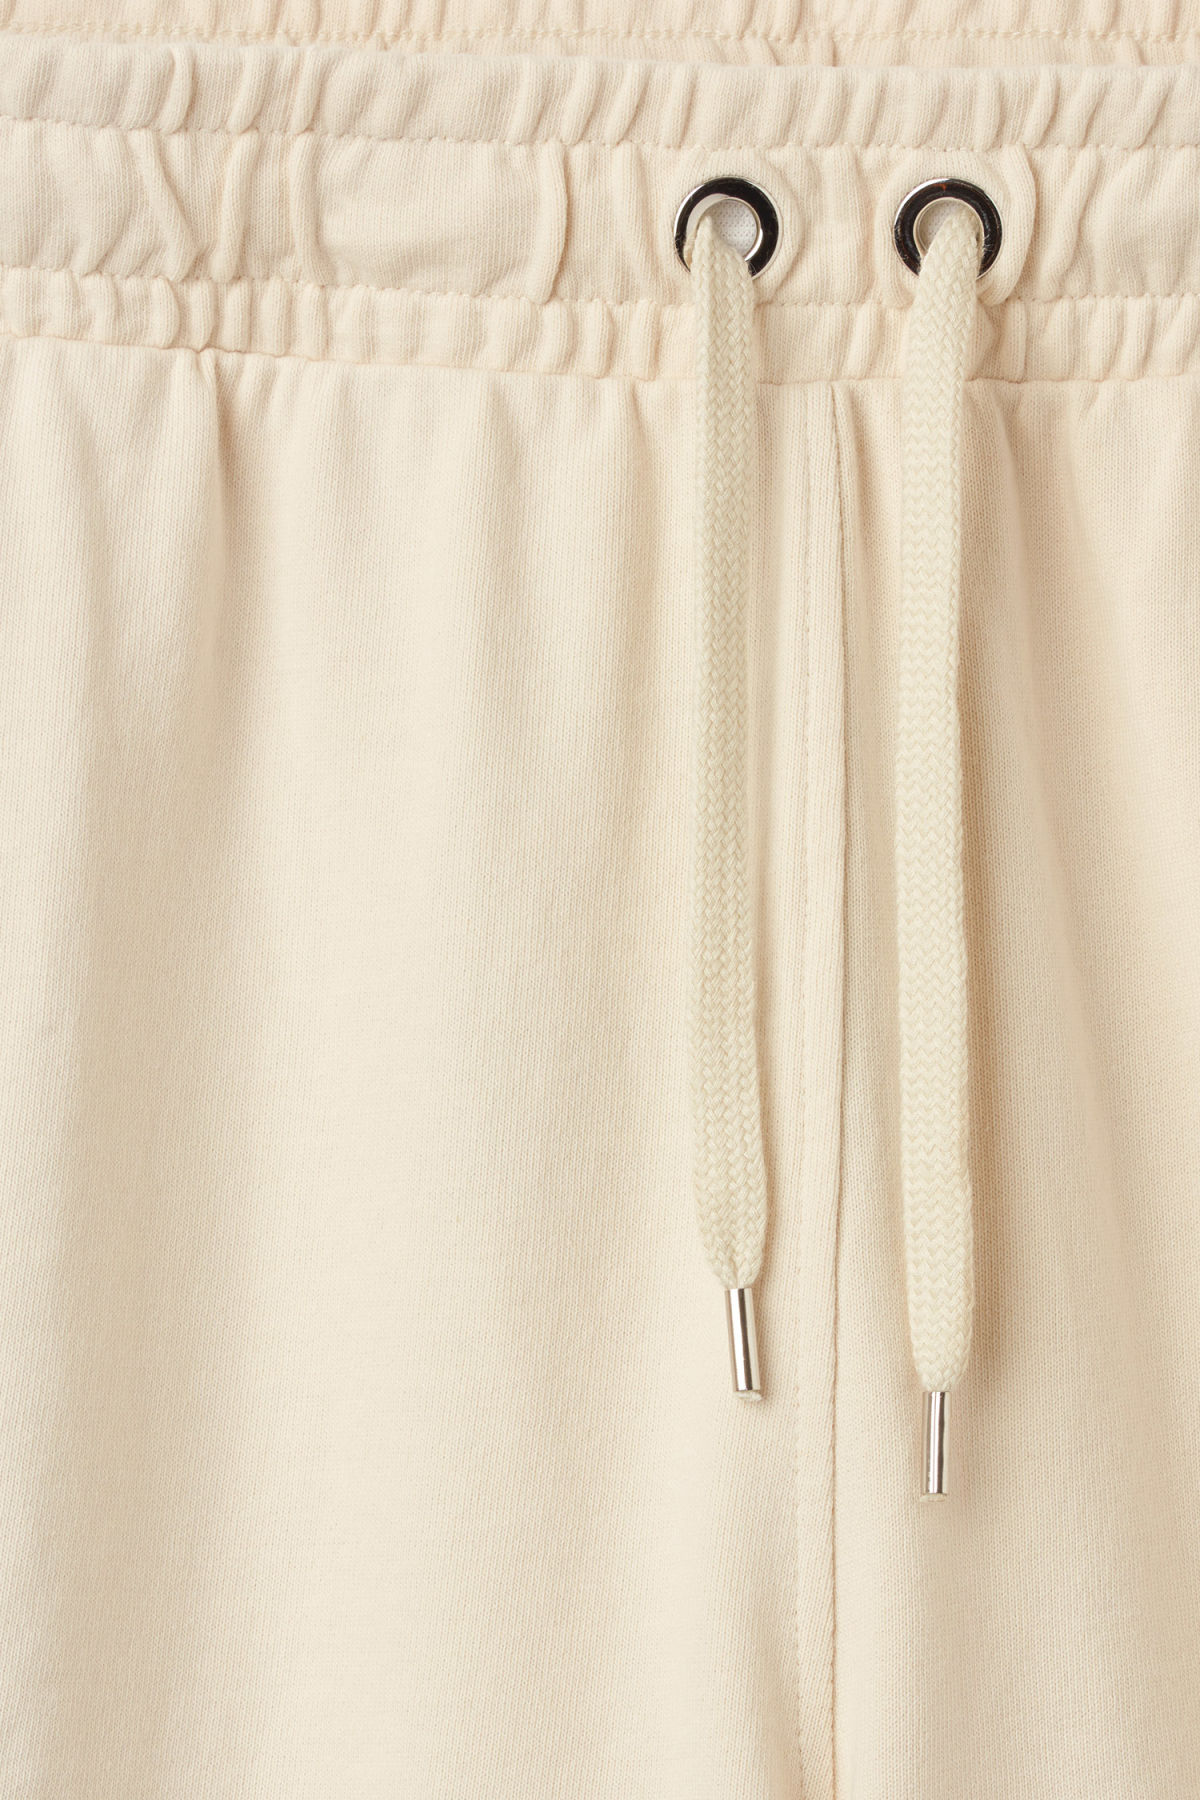 Detailed image of Weekday hurdle shorts in beige